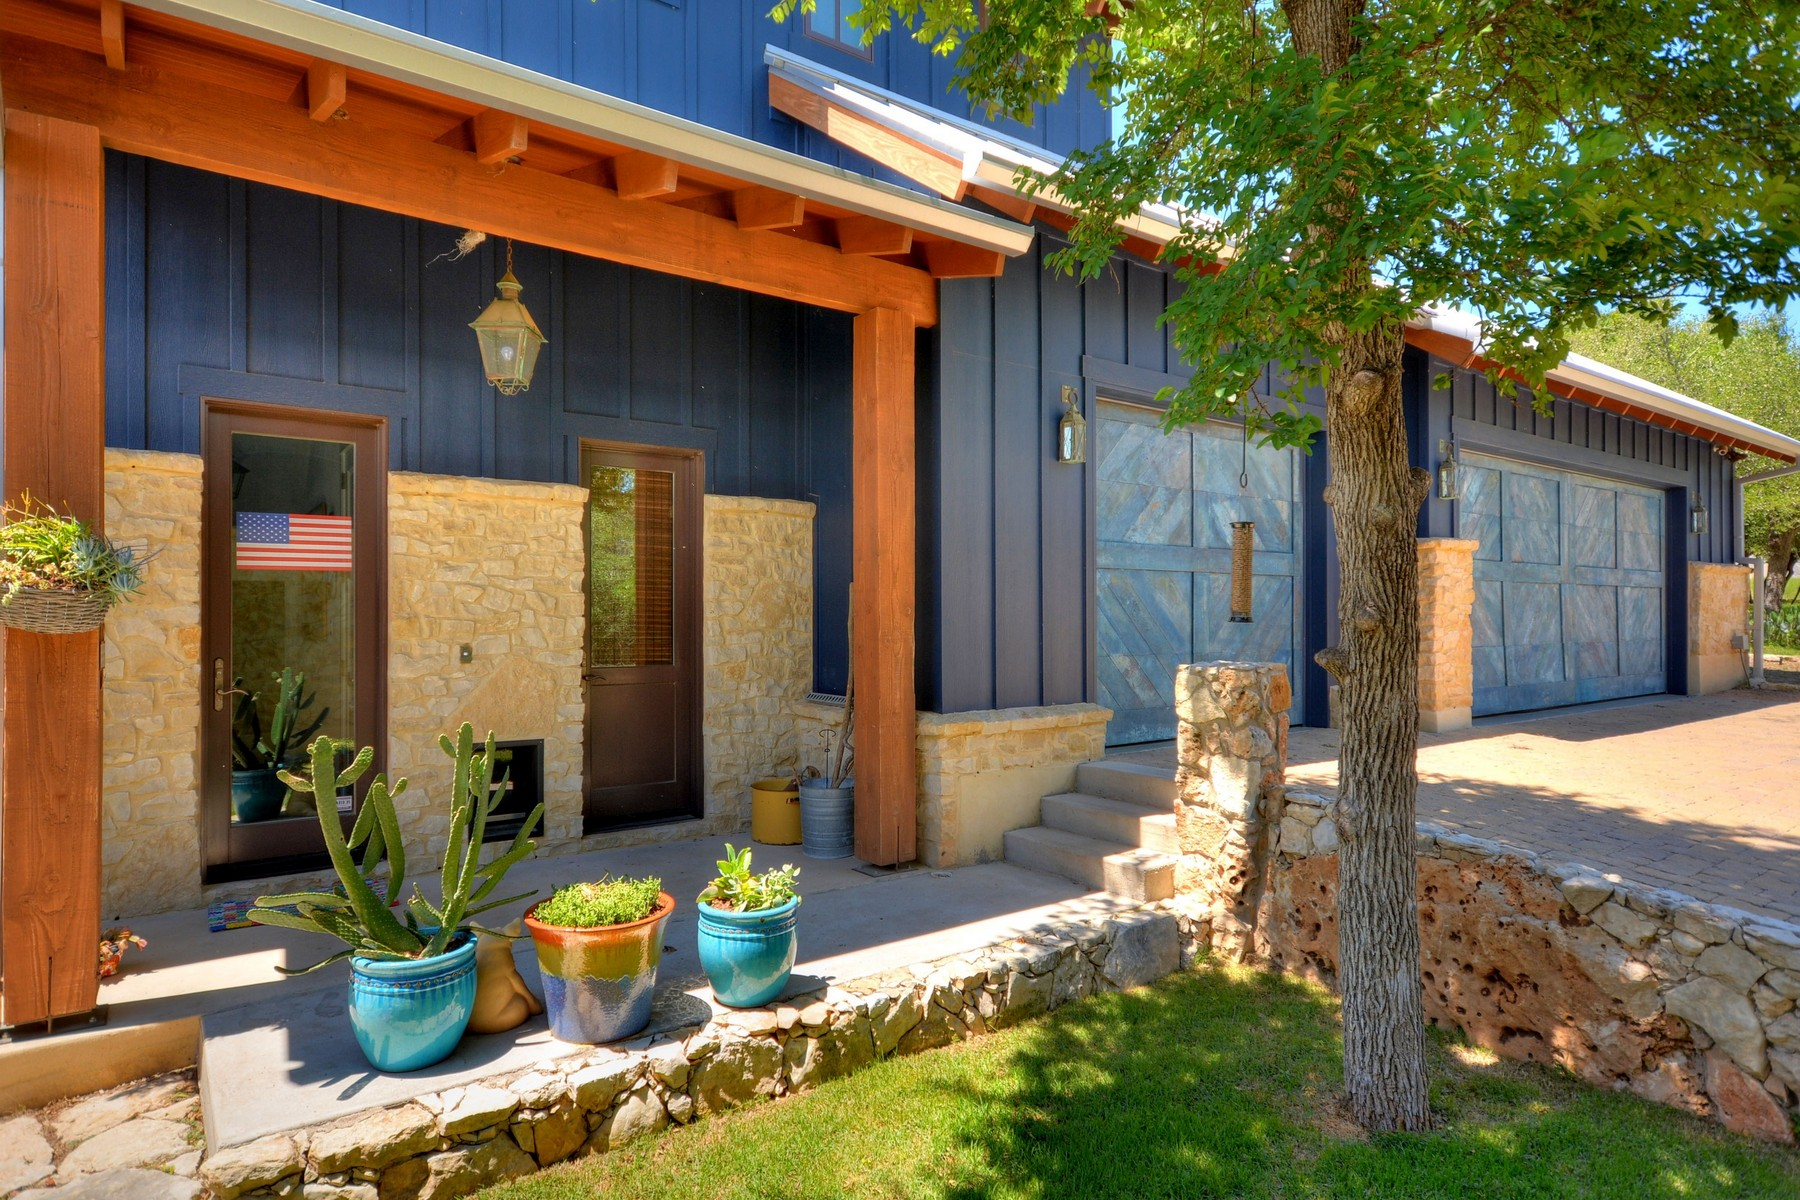 Additional photo for property listing at Country Living in the City 1905 Wood Acre Ln Austin, Texas 78733 Estados Unidos